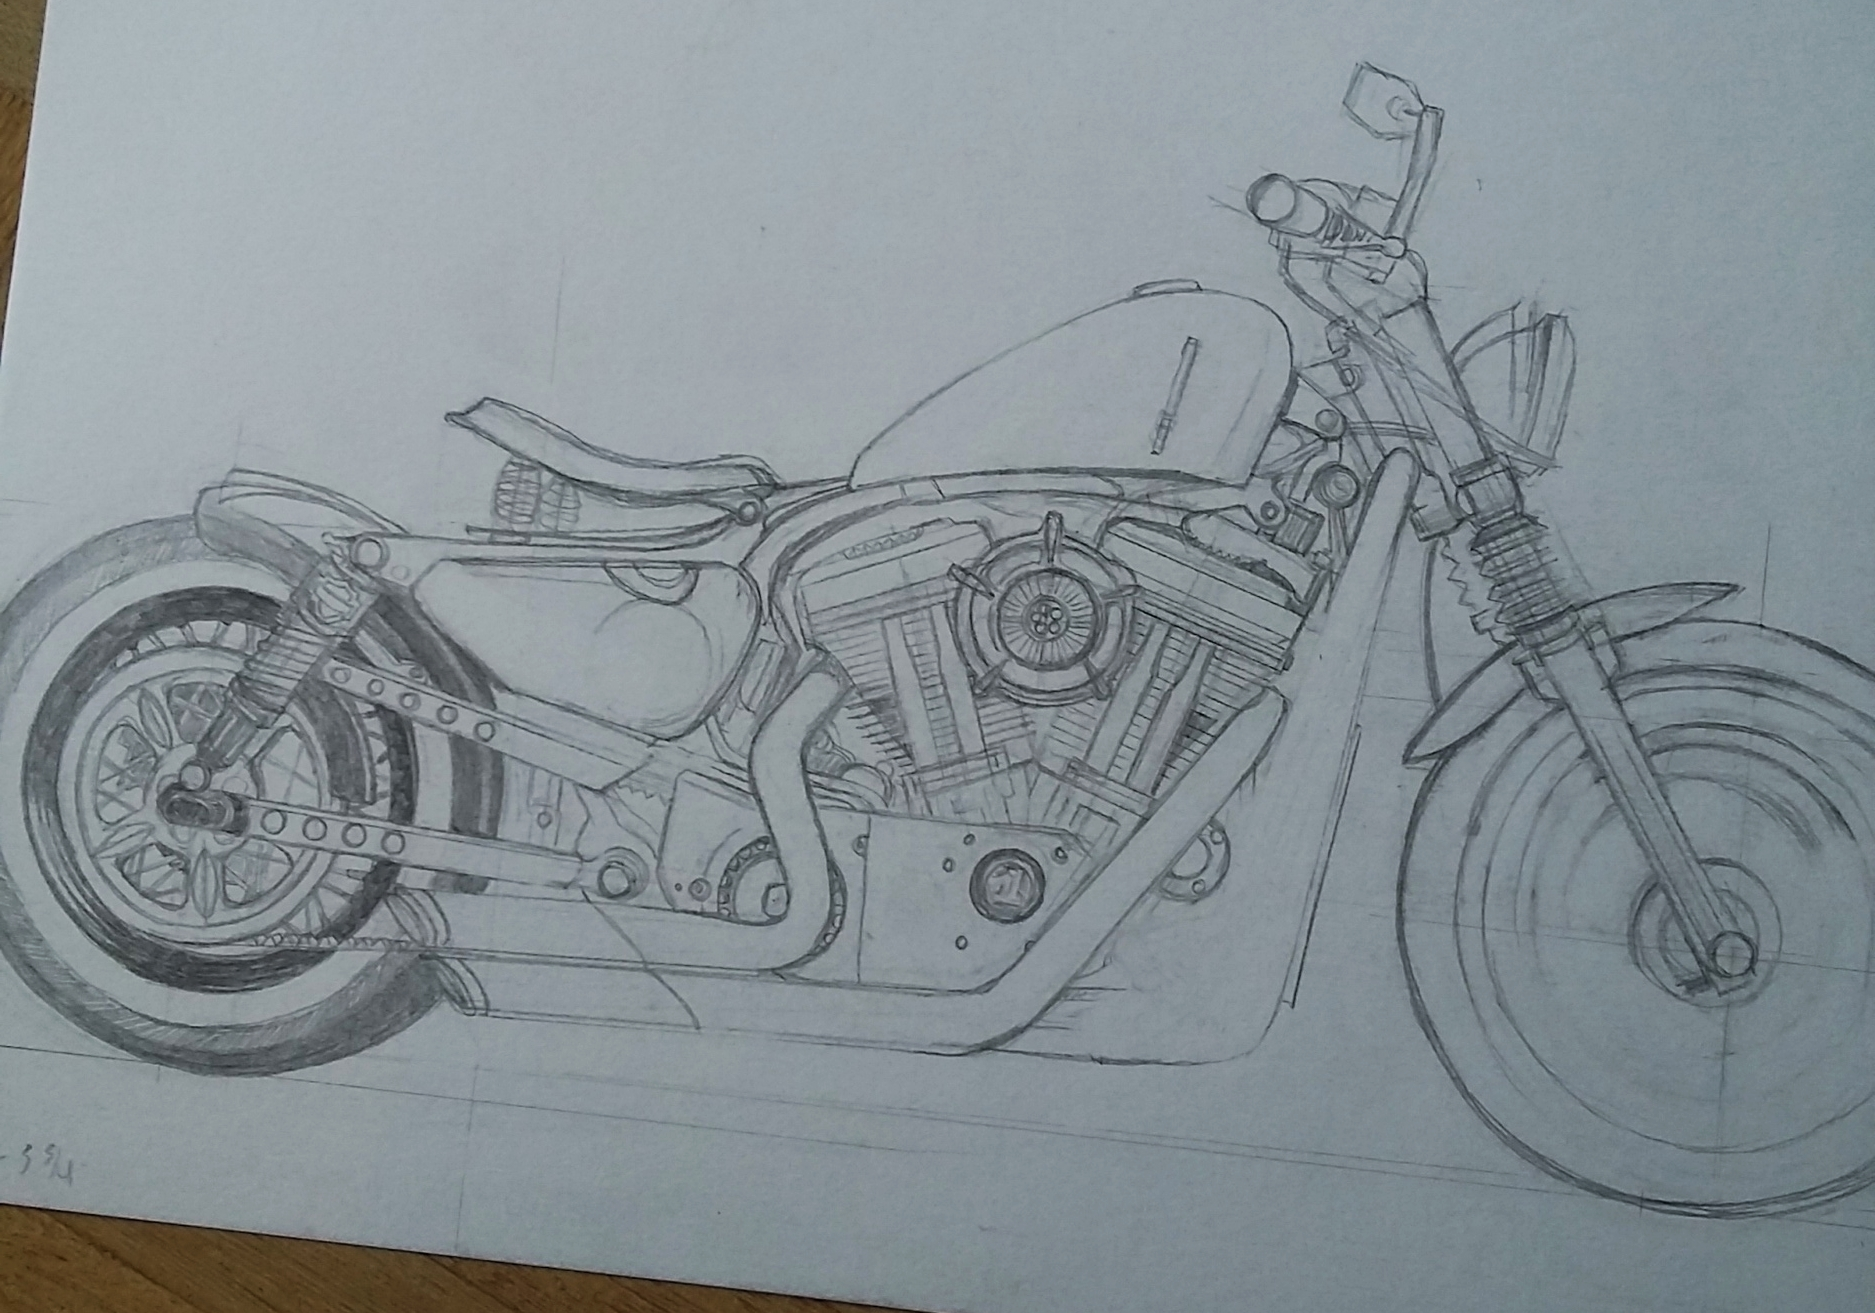 Pencil sketch of the 48